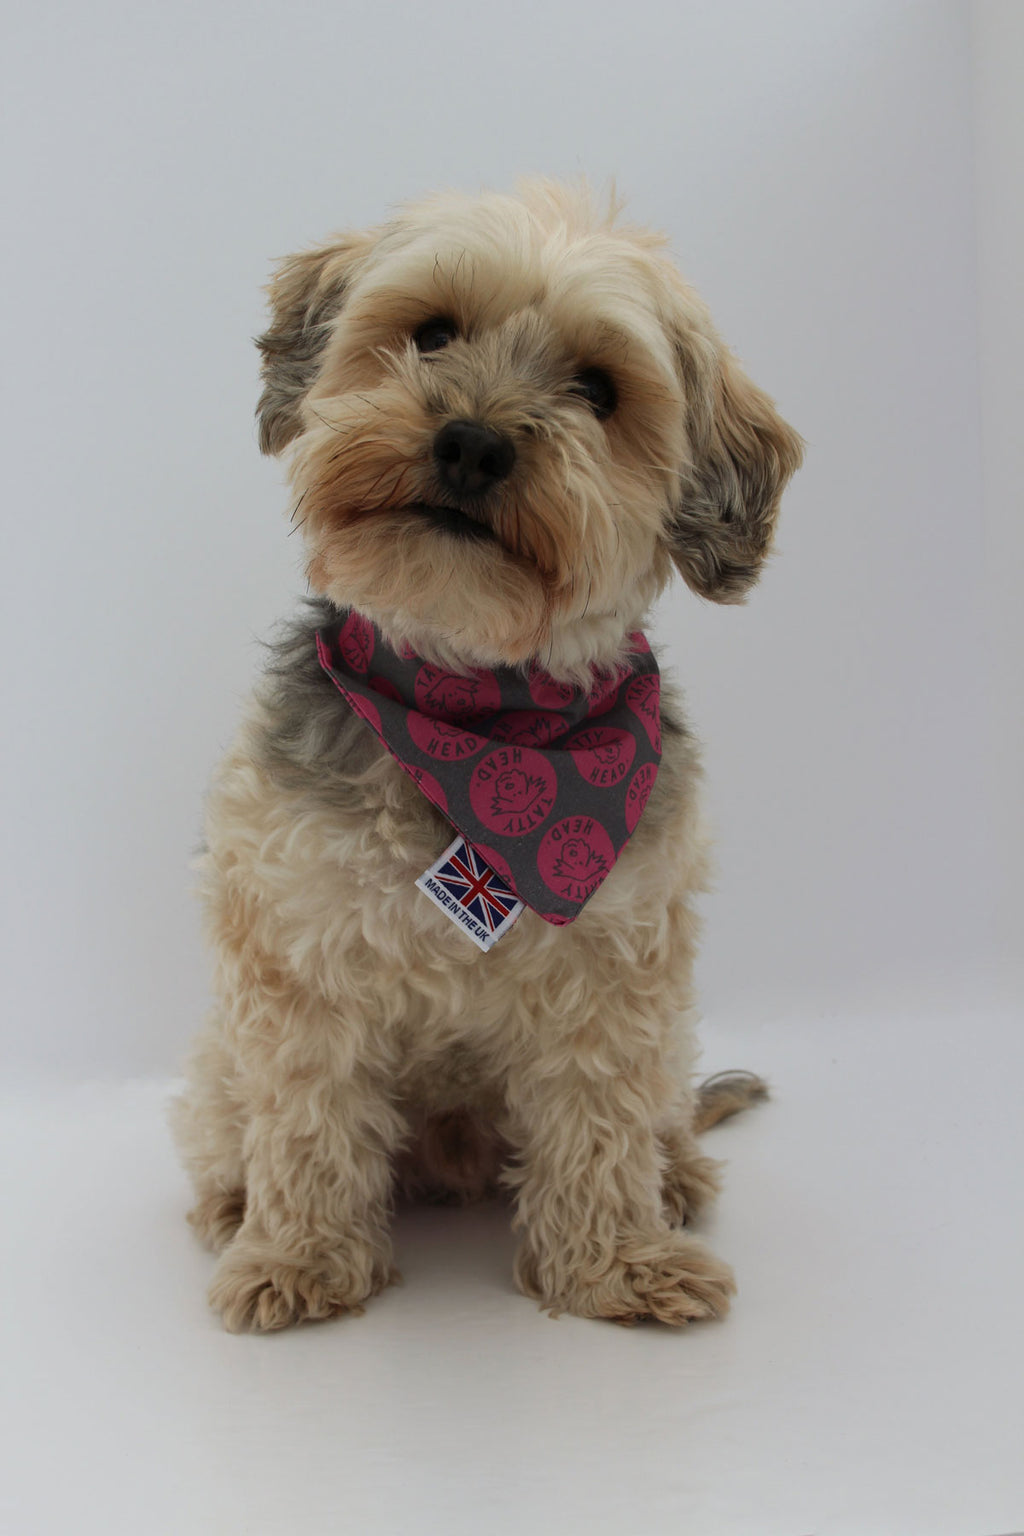 Hugo the Yorkie poo in the Tatty Head pink polka dot pattern over collar dog bandana full